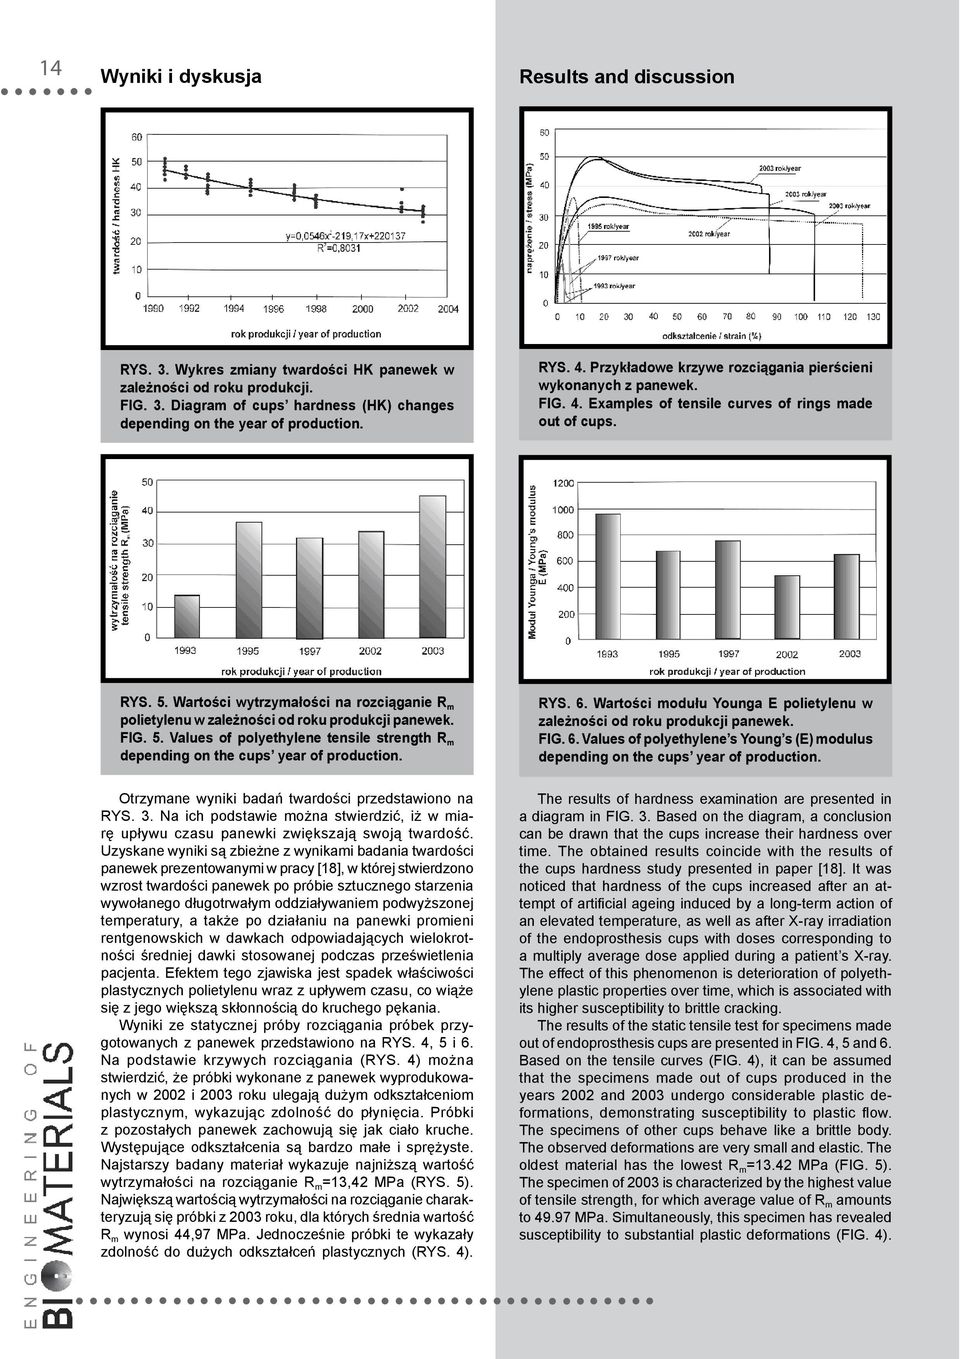 Wartości wytrzymałości na rozciąganie R m polietylenu w zależności od roku produkcji panewek. FIG. 5. Values of polyethylene tensile strength R m depending on the cups year of production.